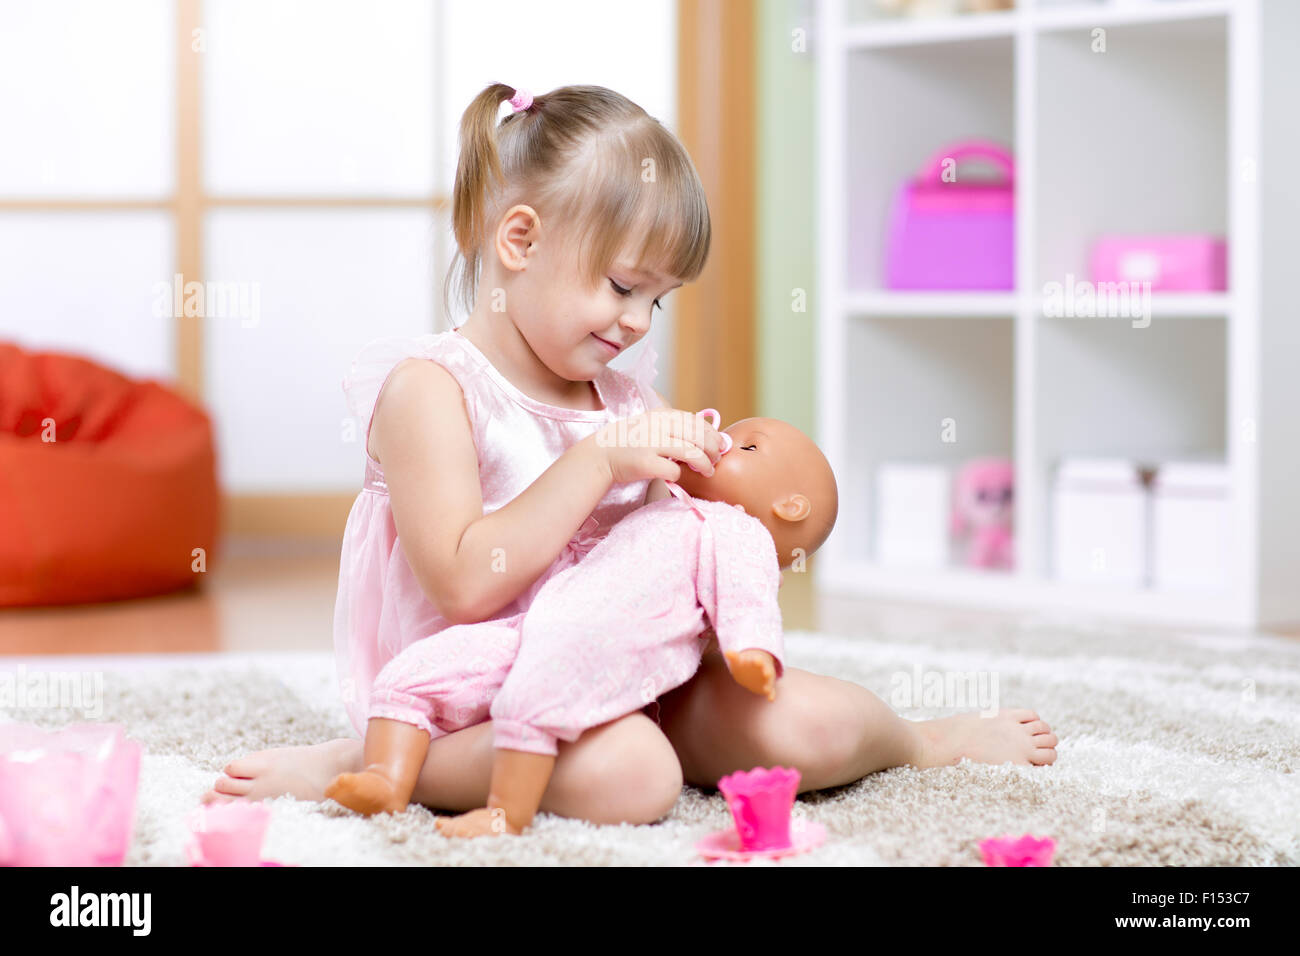 girl playing with her baby-doll - Stock Image